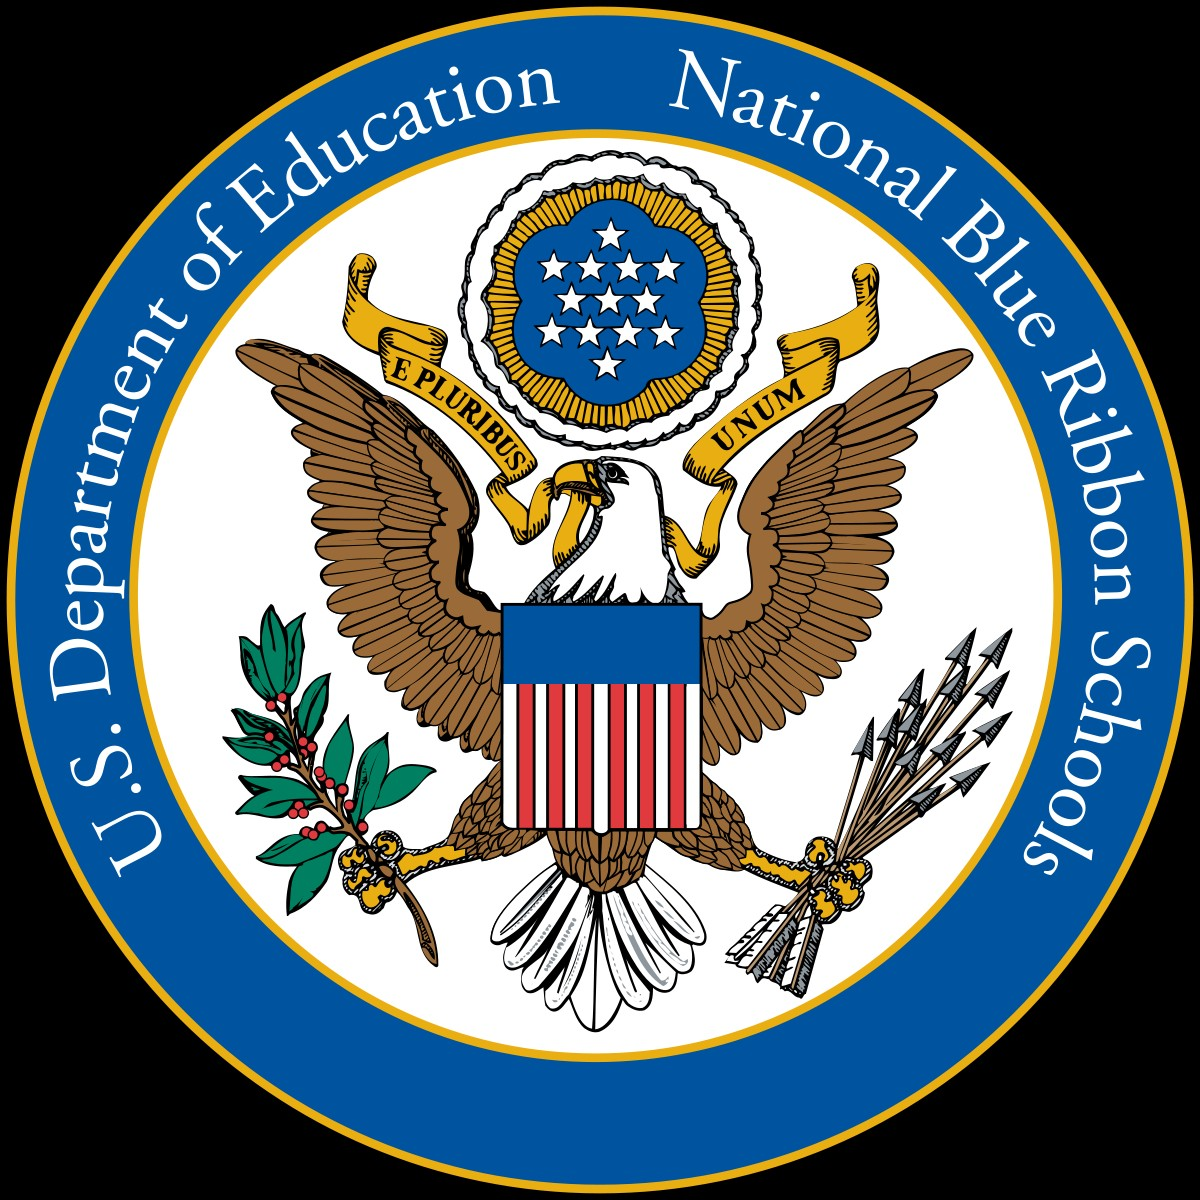 Ten Louisiana schools have won 2020 @NatlBlueRibbon awards.  See which schools earned this national honor. #LouisianaBelieves #LaEd